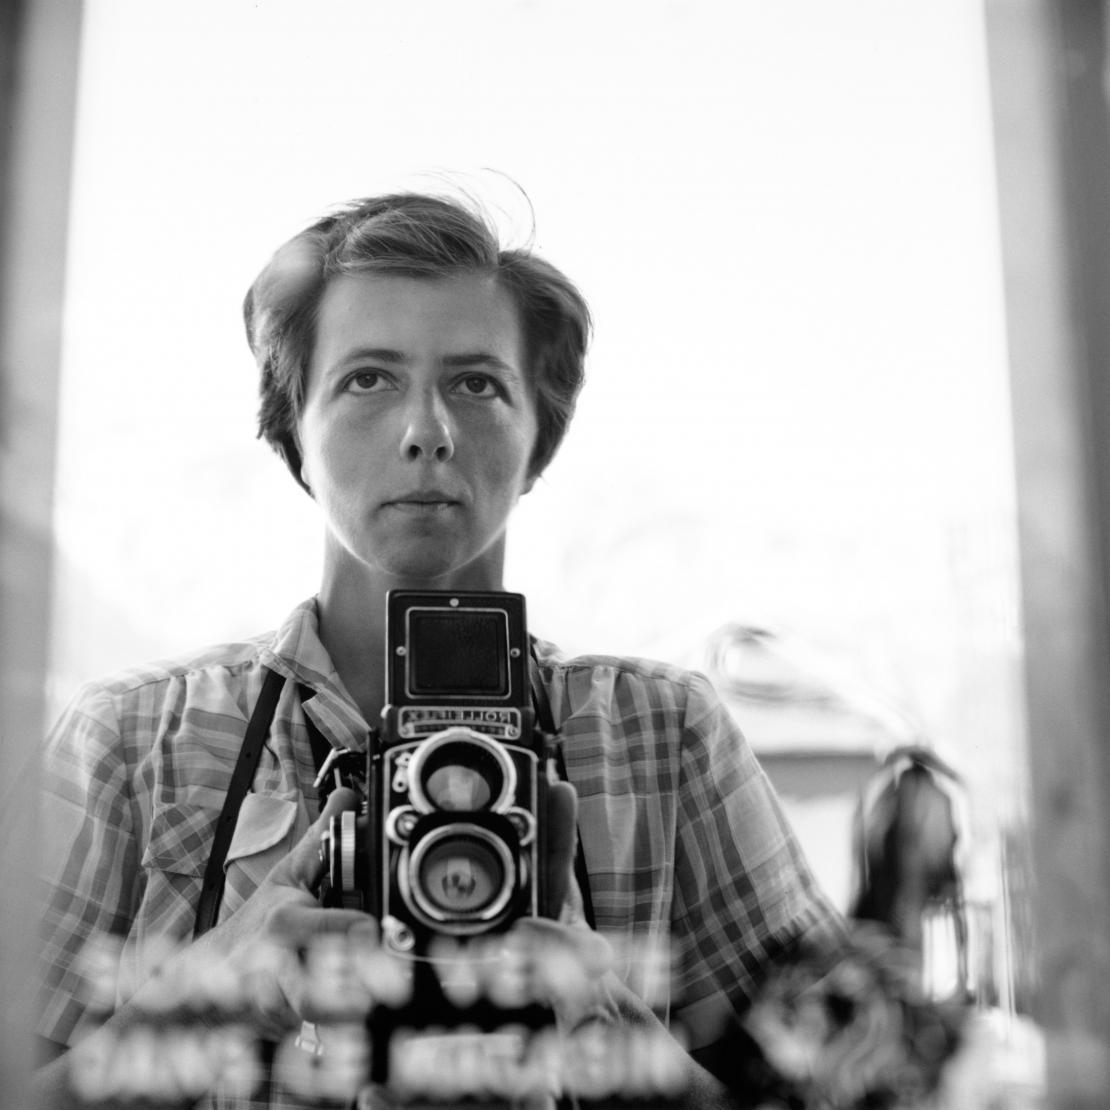 © Estate of Vivian Maier, Courtesy of Maloof Collection and Howard Greenberg Gallery, NY.